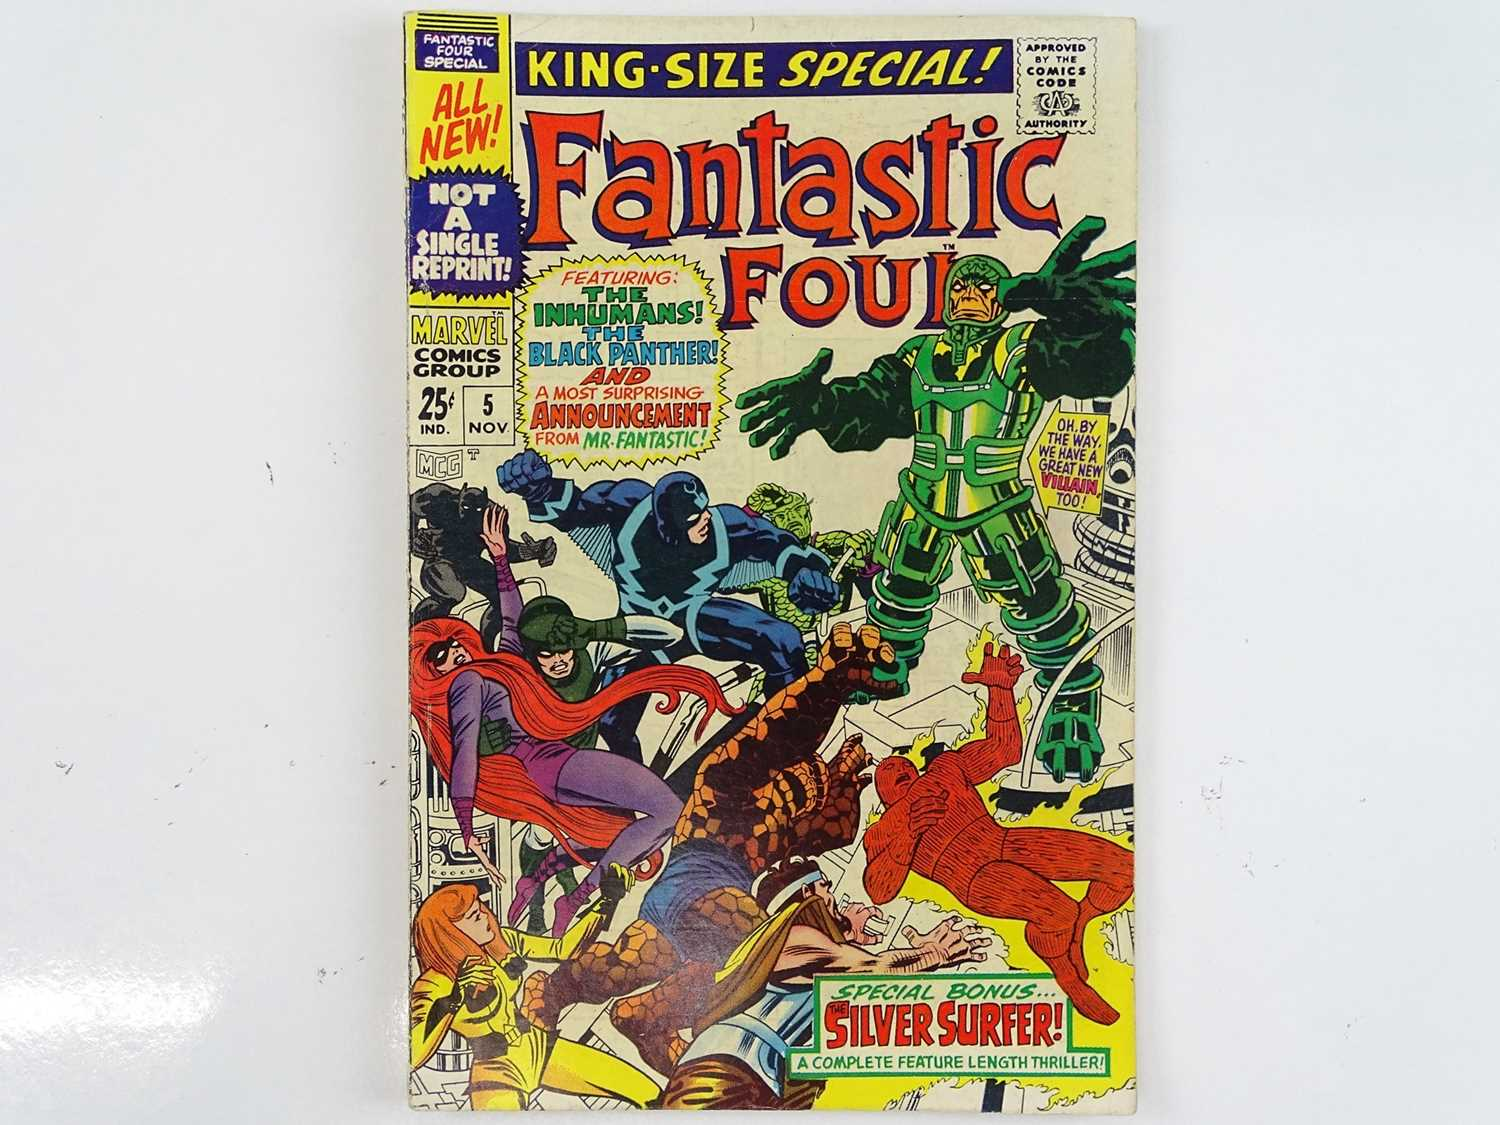 Lot 166 - FANTASTIC FOUR KING-SIZE ANNUAL SPECIAL #5...